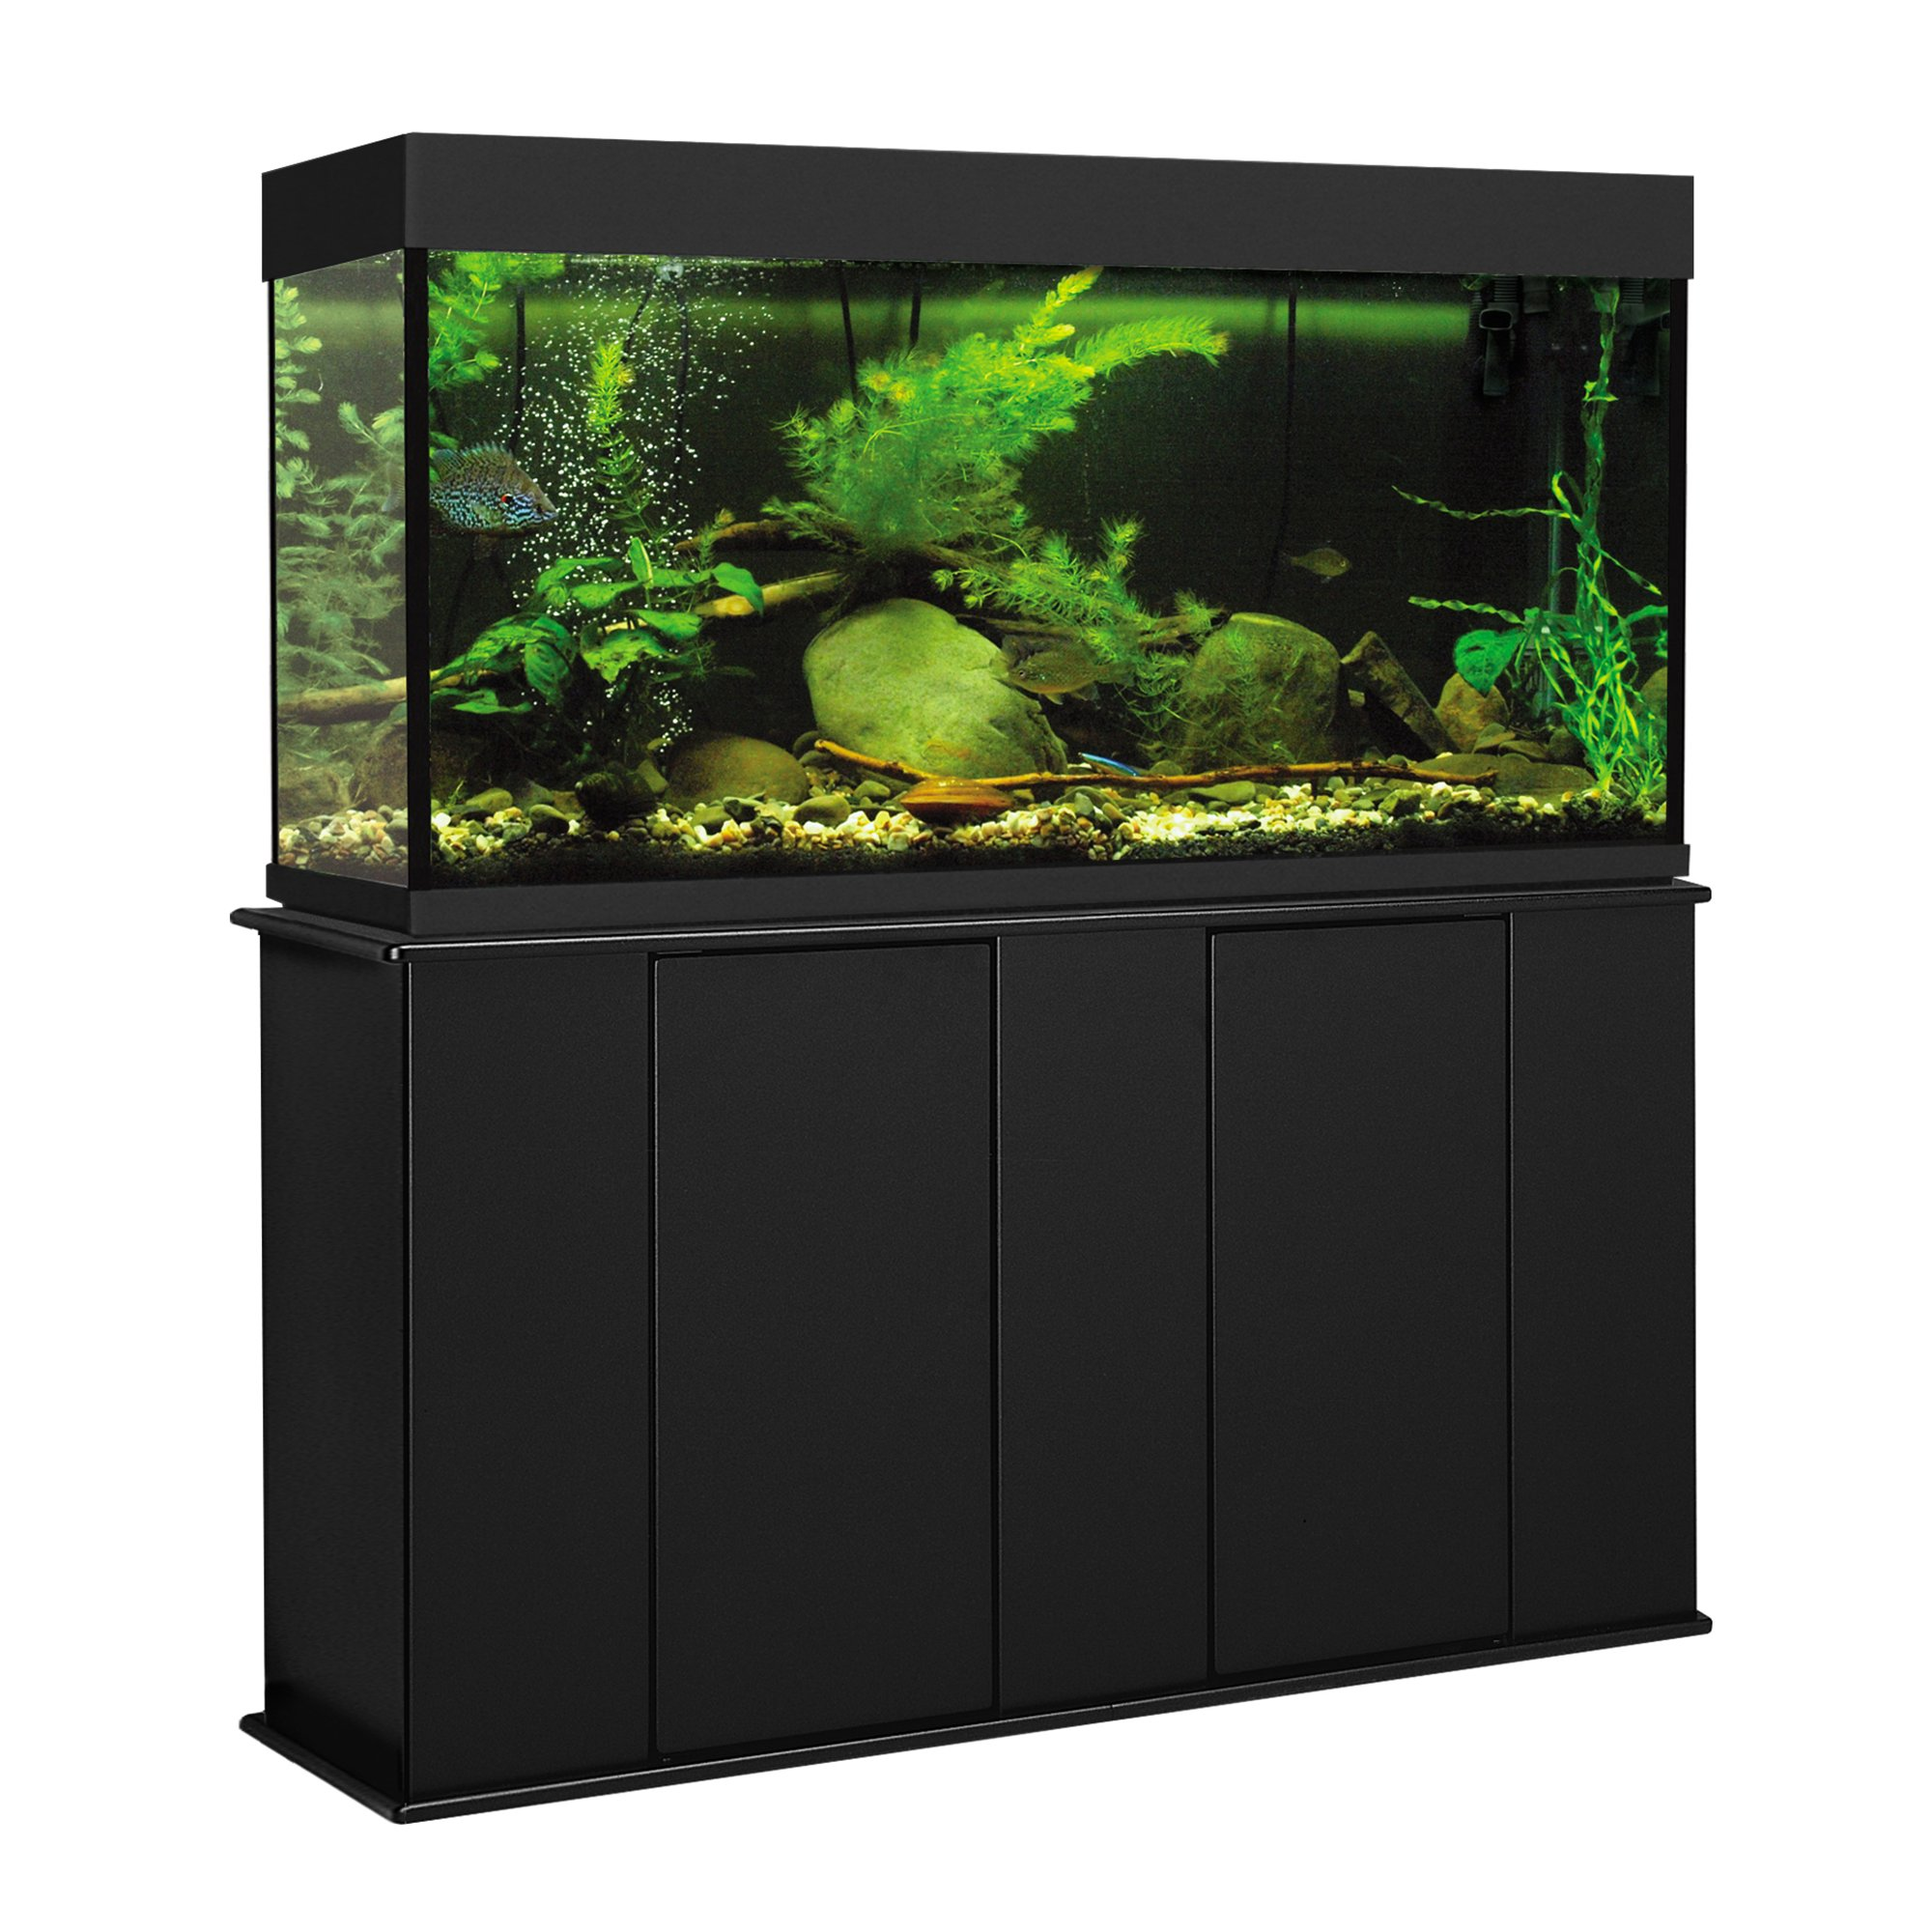 Small aquarium fish tanks - Aquatic Fundamentals 55 Gallon Upright Aquarium Stand